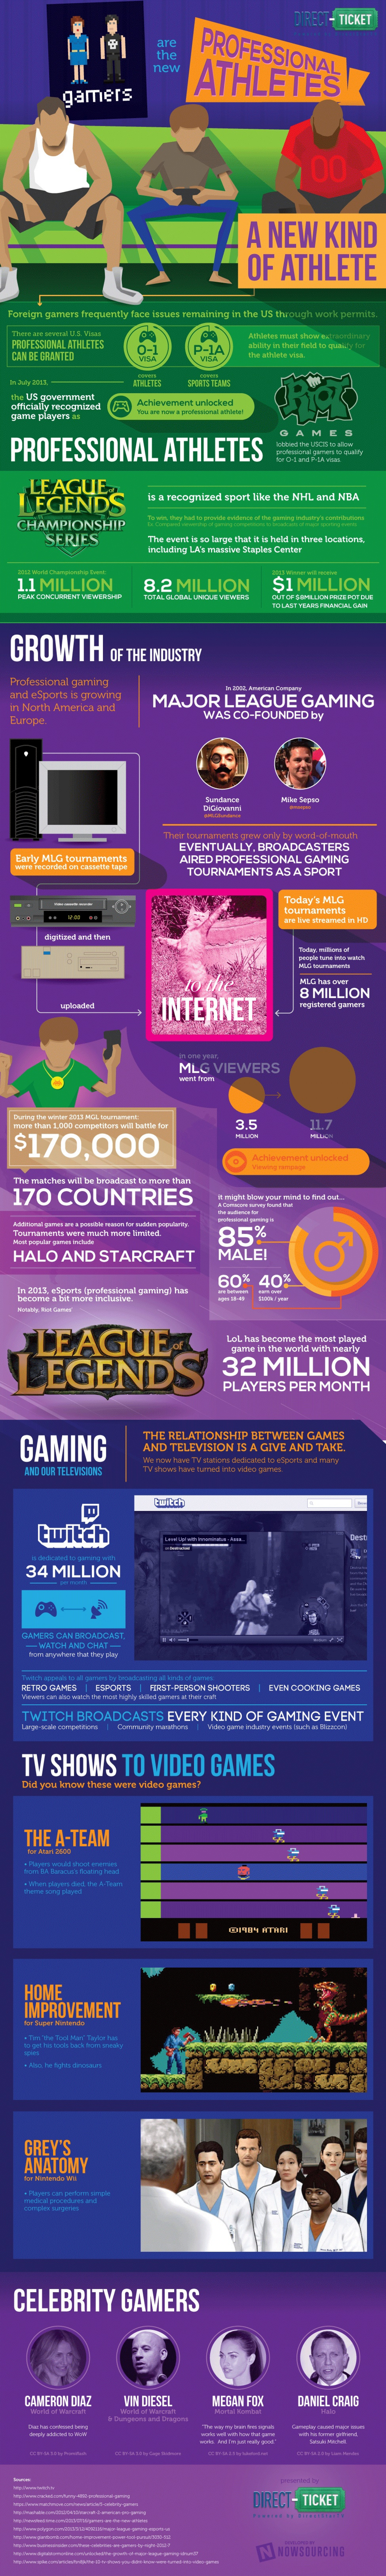 Gamers are the New Professional Athletes Infographic